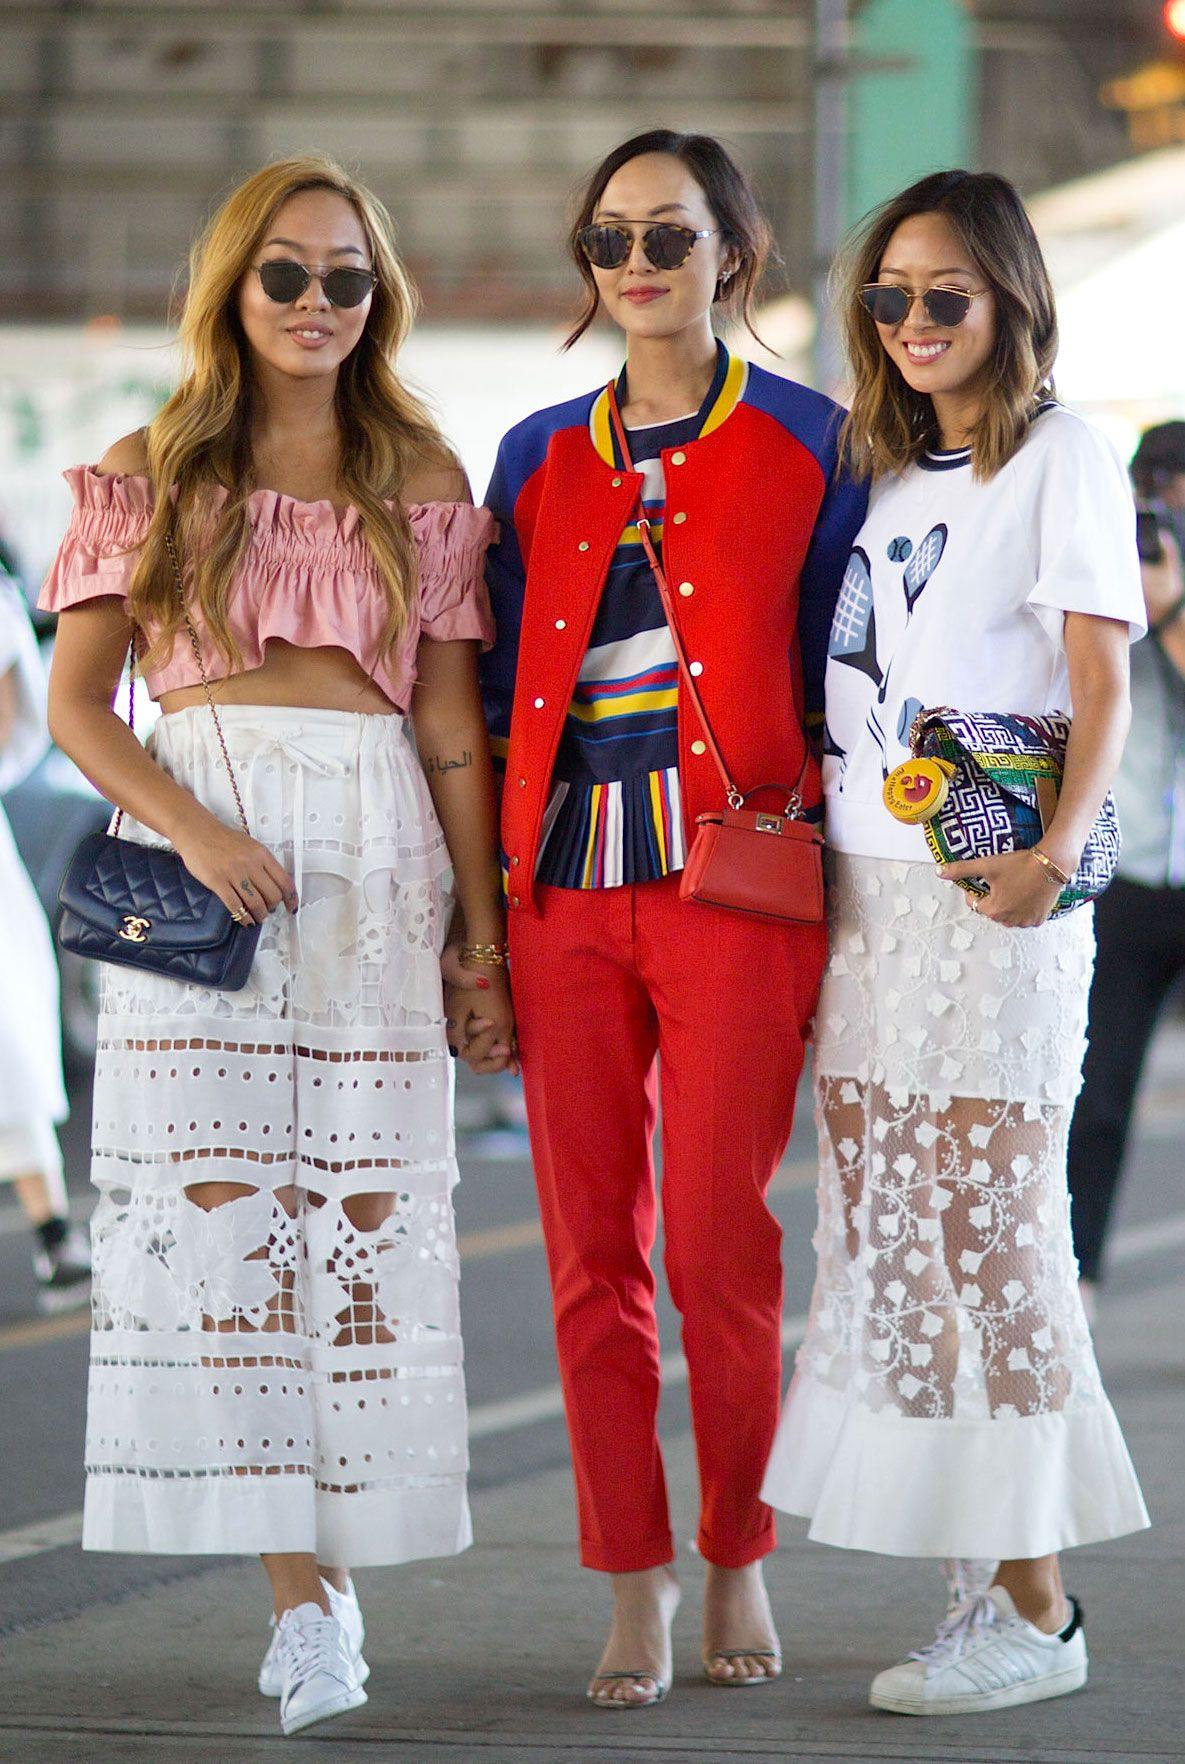 Dani Song, Chriselle Lim and Aimee Song. New York Fashion Week, Spring 2016.